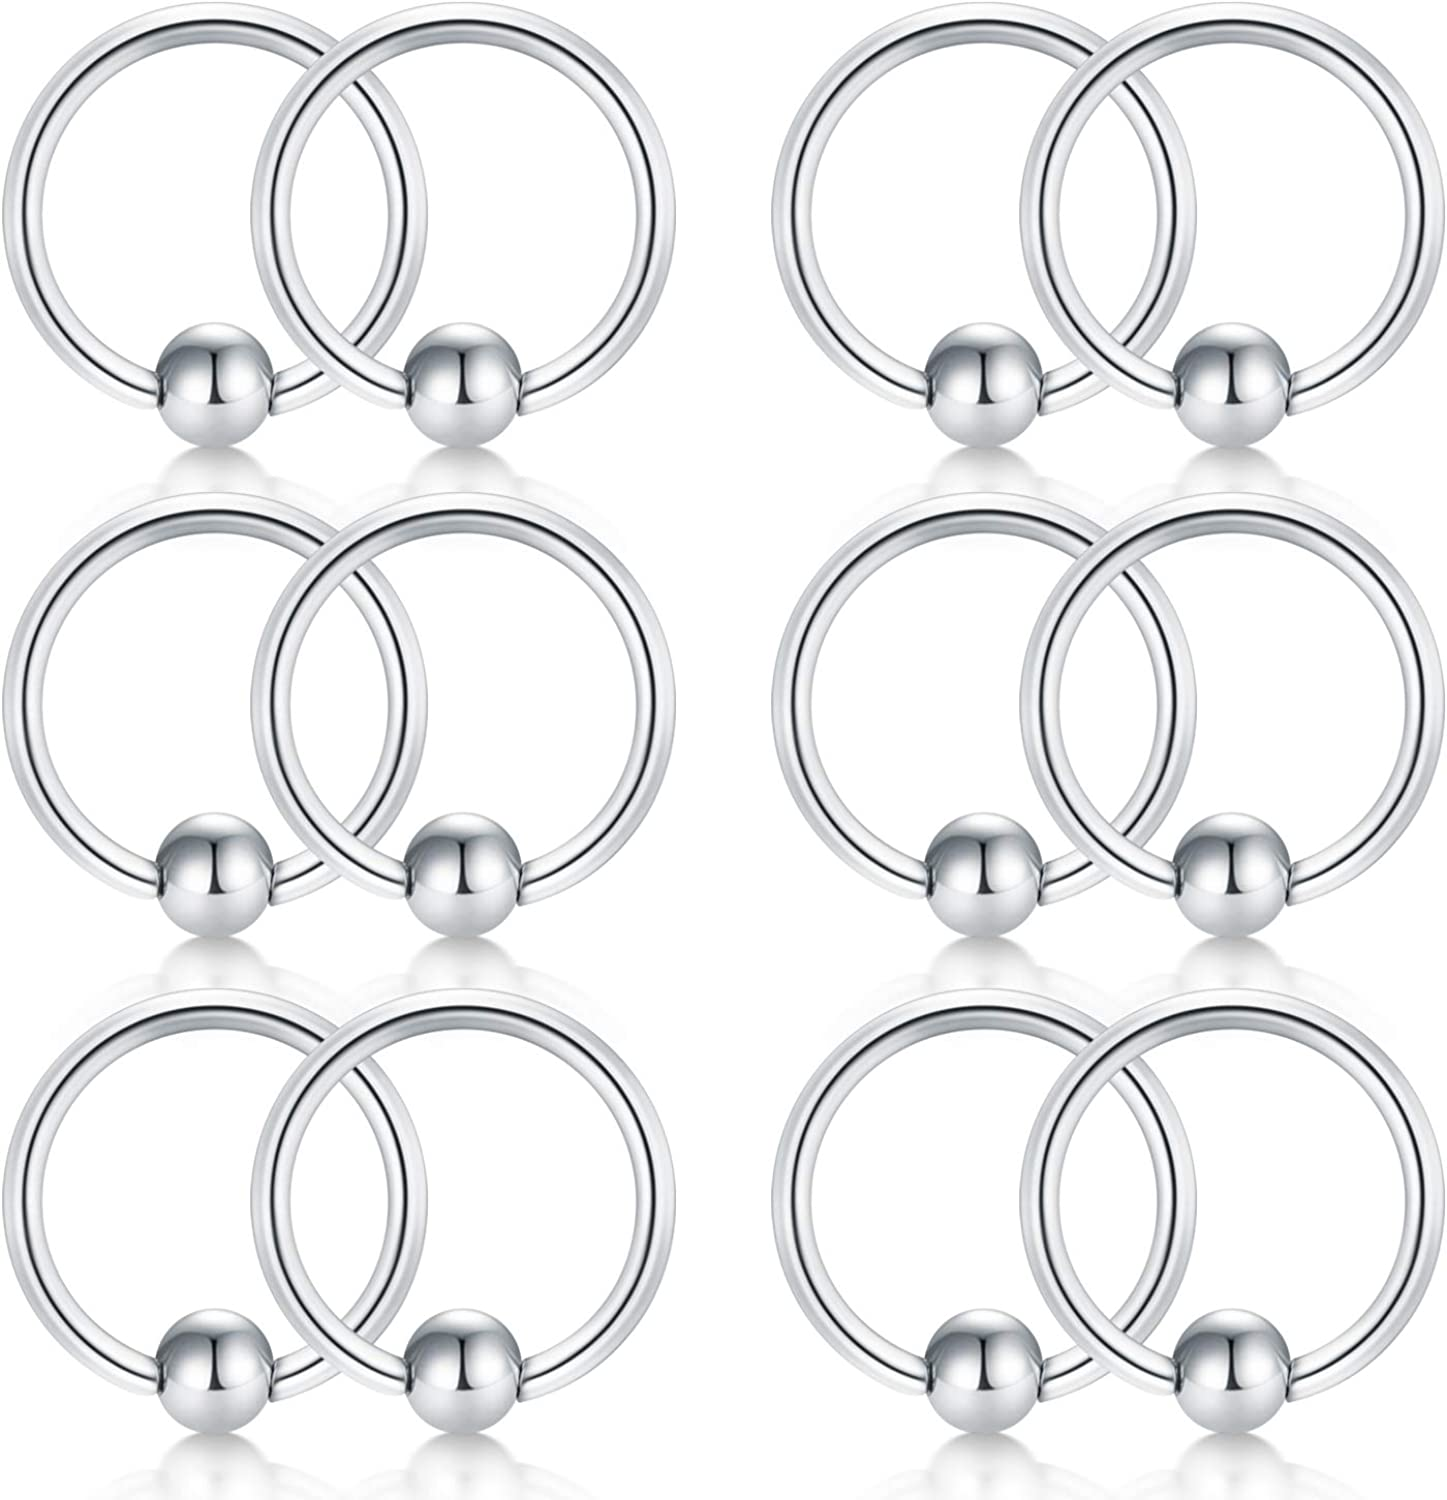 18g 20g 8mm 10mm 316l Surgical Steel Lip Eyebrow Tongue Helix Tragus Septum Nose Piercing Ring